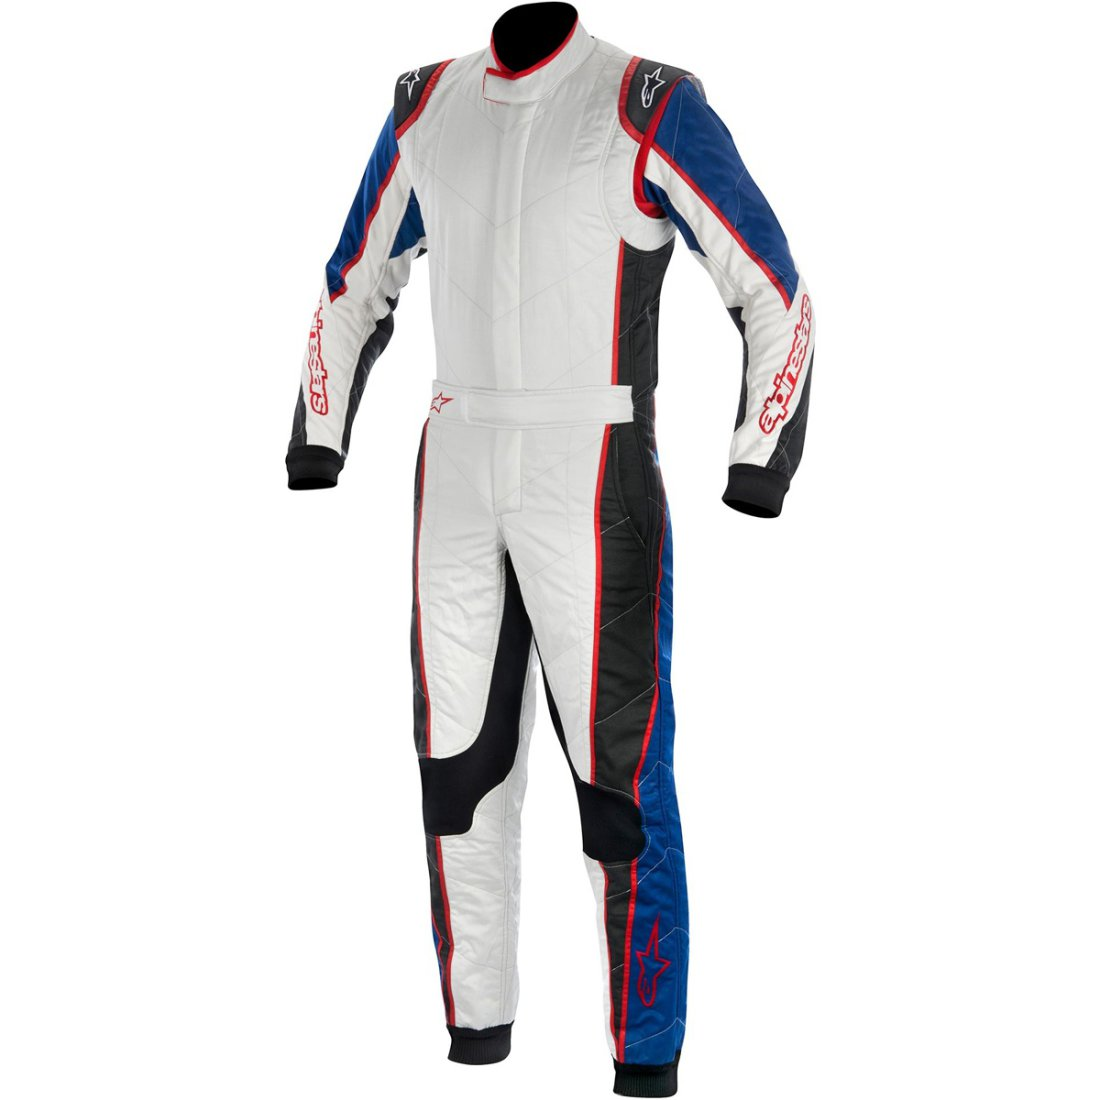 combinaison alpinestars gp tech 2015 silver blue red motocard. Black Bedroom Furniture Sets. Home Design Ideas